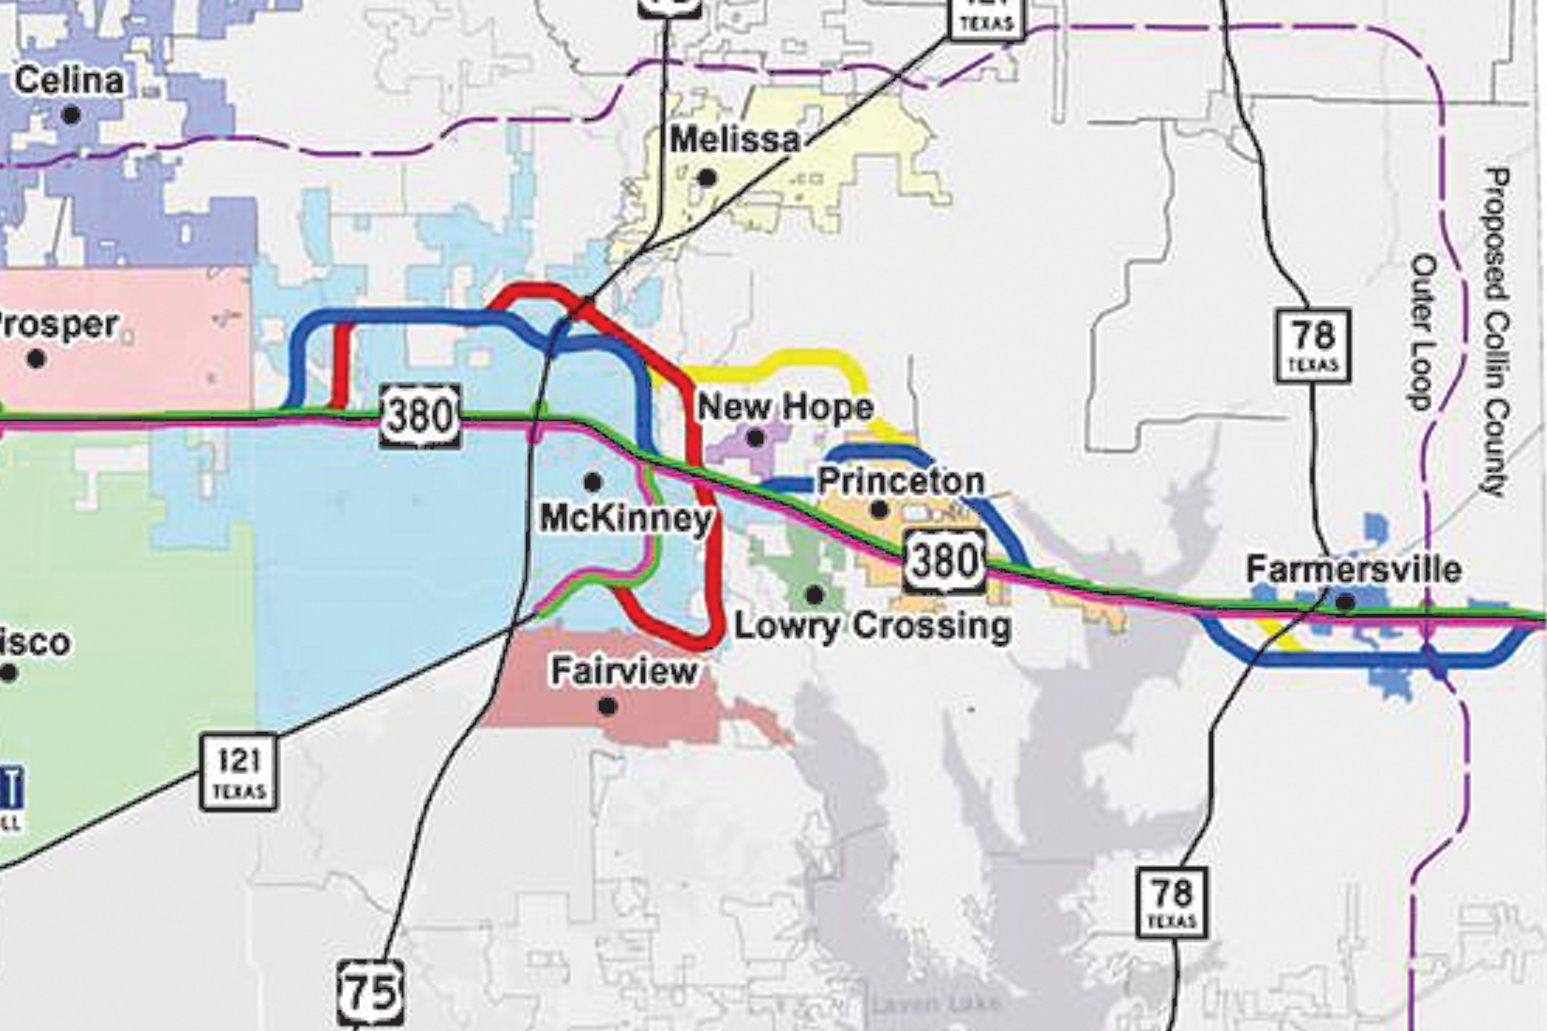 Hwy. 380 alignment topic of discussion